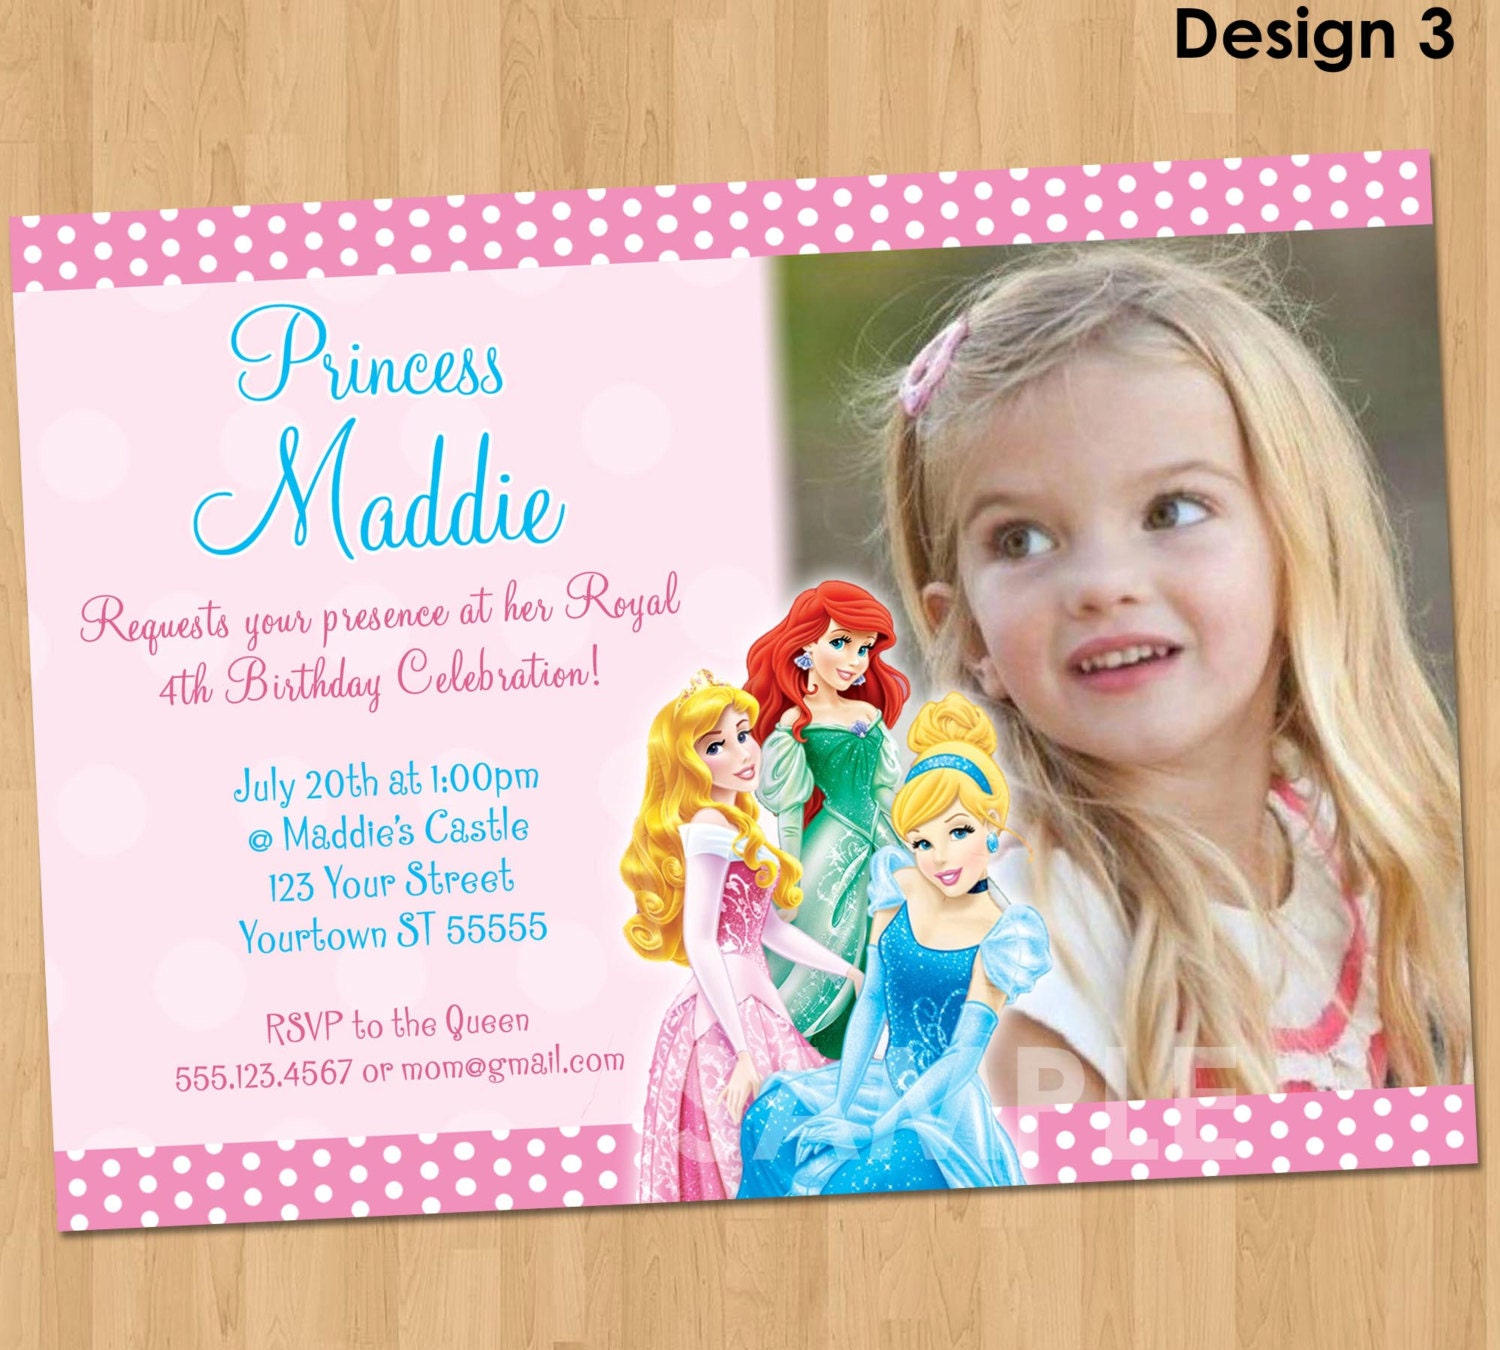 Disney Princess Invitation Disney Princess Party Invitation – Disney Princess Party Invitations Printable